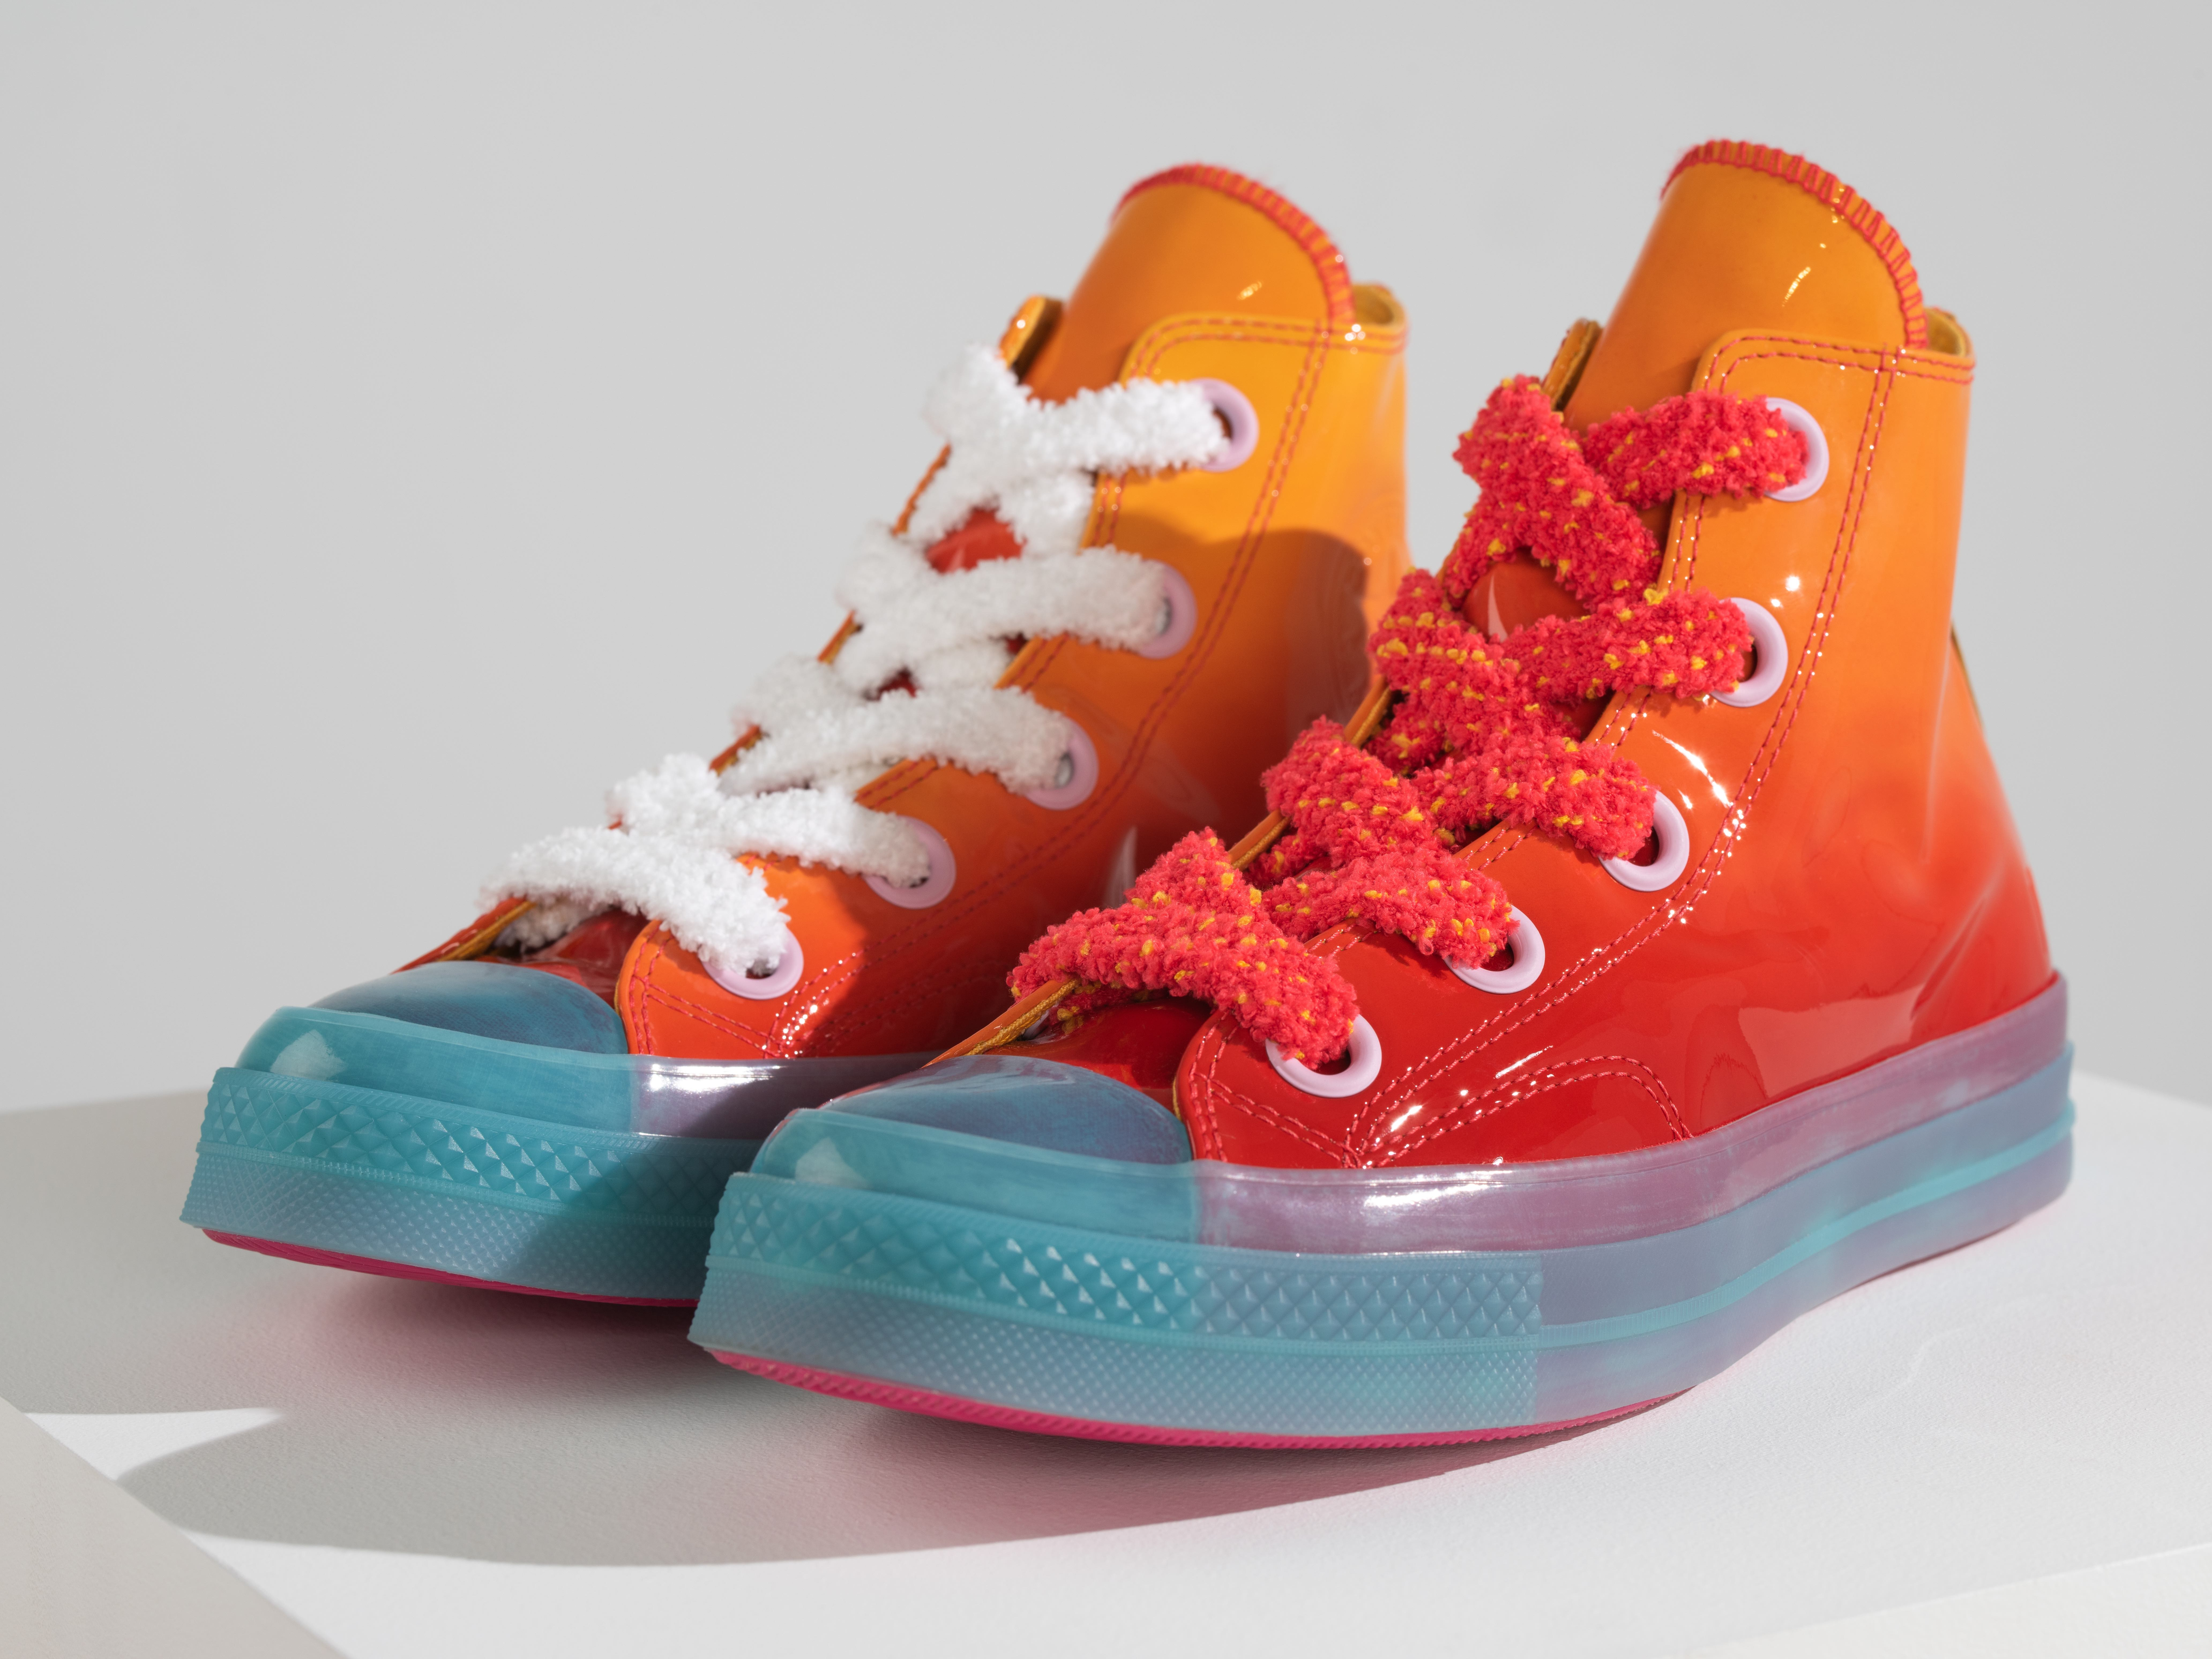 JW Anderson x Converse Chuck 70 'Toy' Collection 4